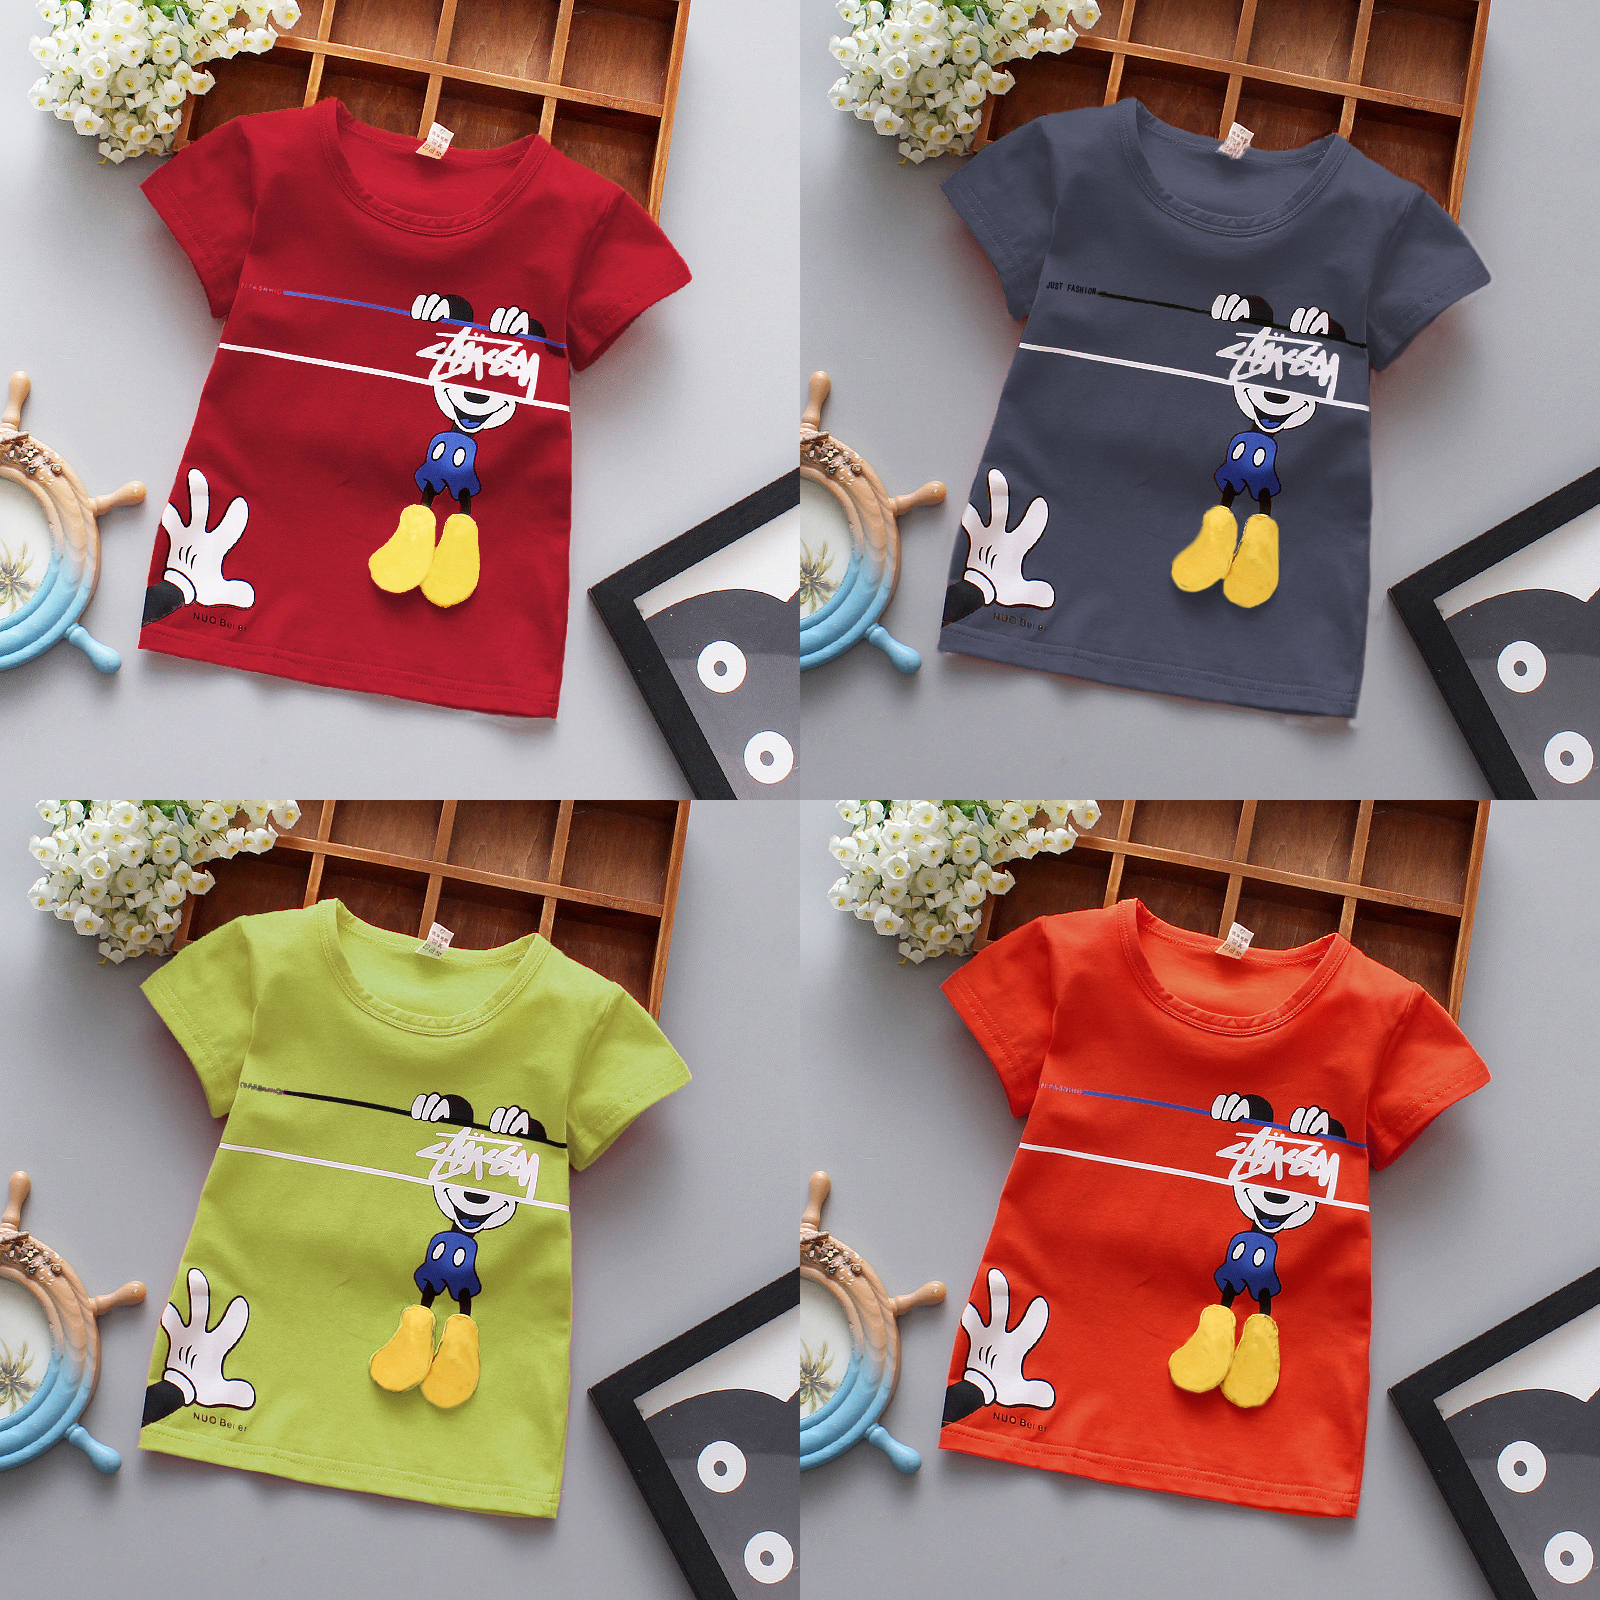 T-Shirt Tees Tops Cartoon Clothes Toddler Girl Infant Baby Short-Sleeved Boy Kids Cotton